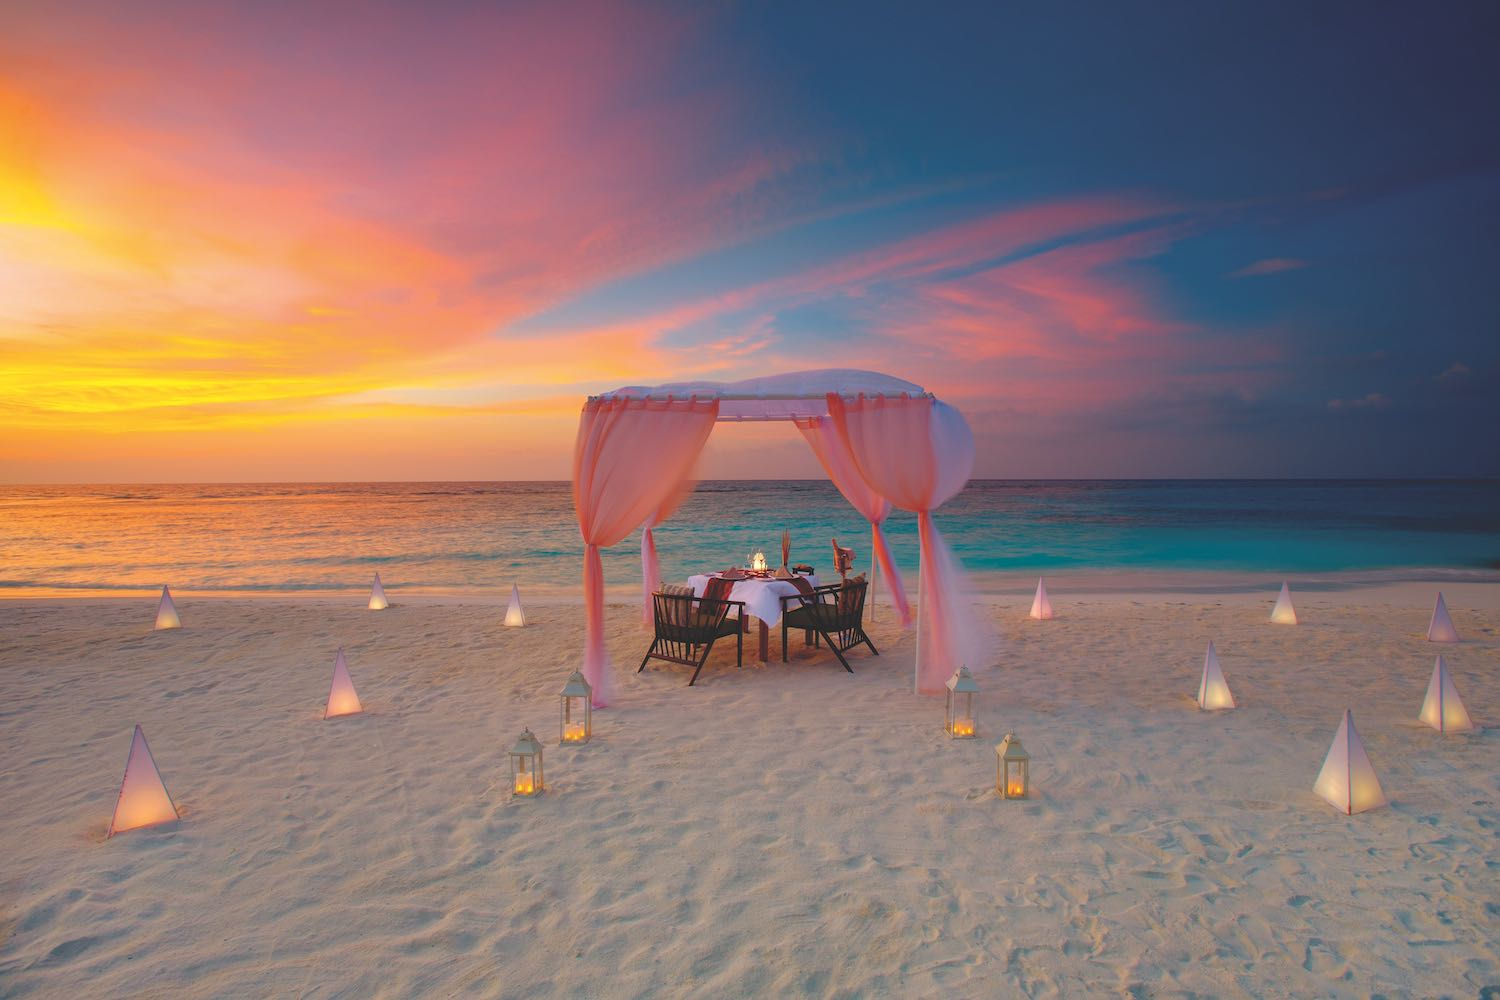 maldives-oblu-select-at-sangeli-private-dining-holiday-honeymoon-vacation-invite-to-paradise.jpg